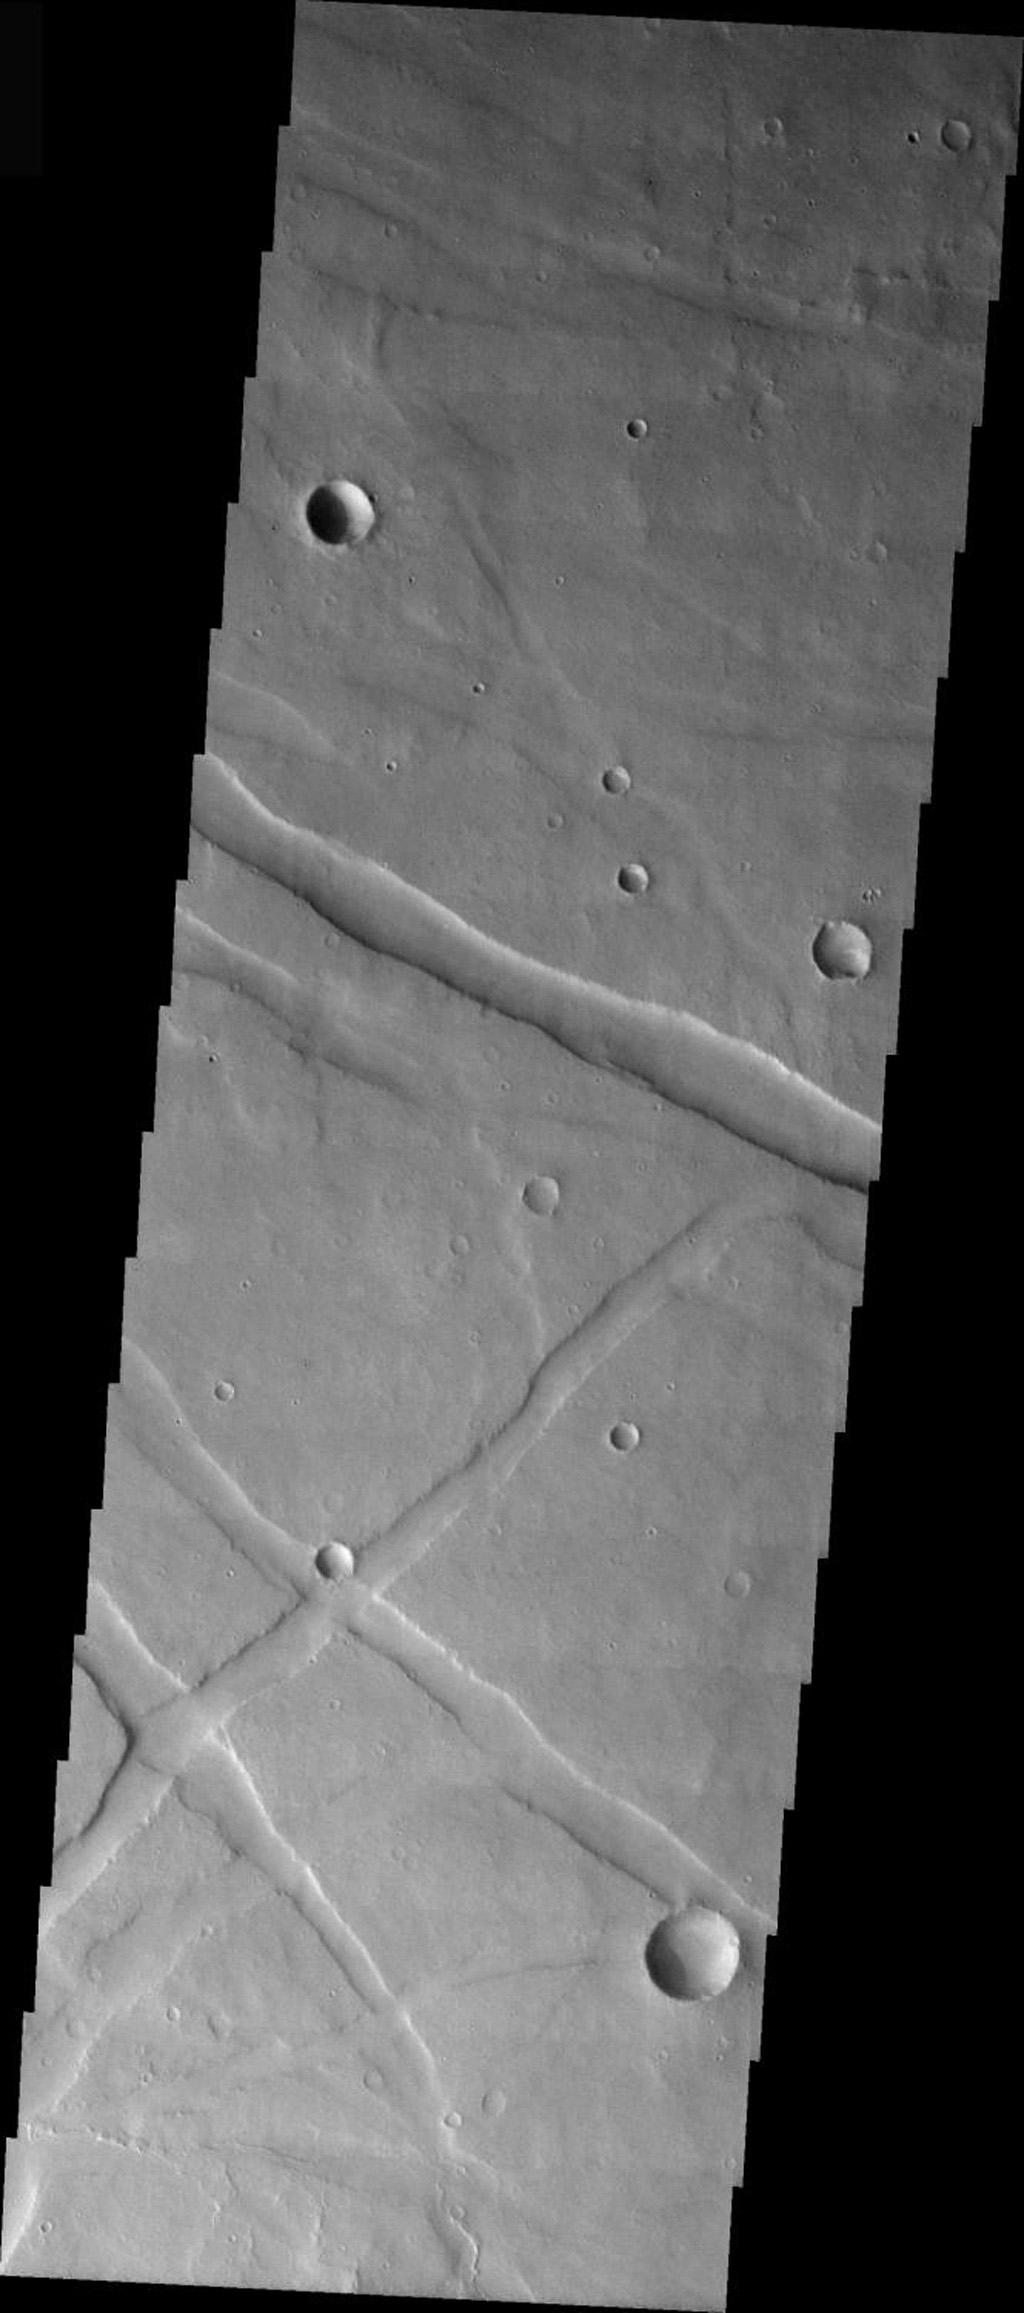 This image from NASA's 2001 Mars Odyssey shows the south of the rim of Valles Marineris on Mars. The troughs seen in this image are structural features called graben.